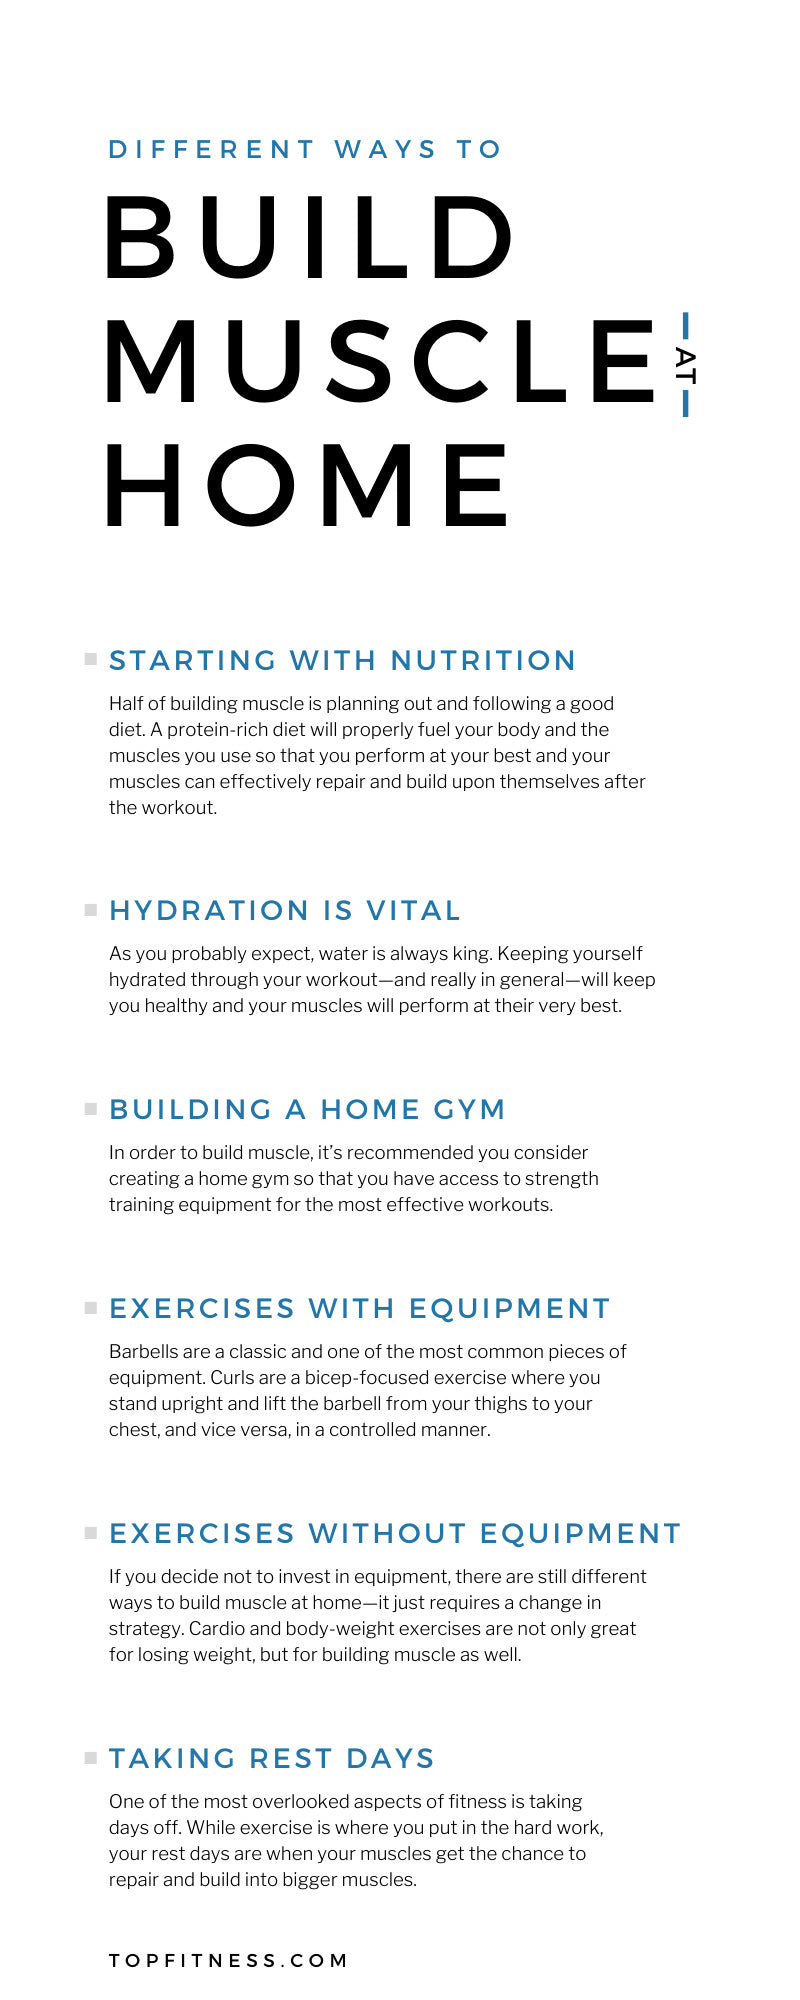 Different Ways To Build Muscle at Home